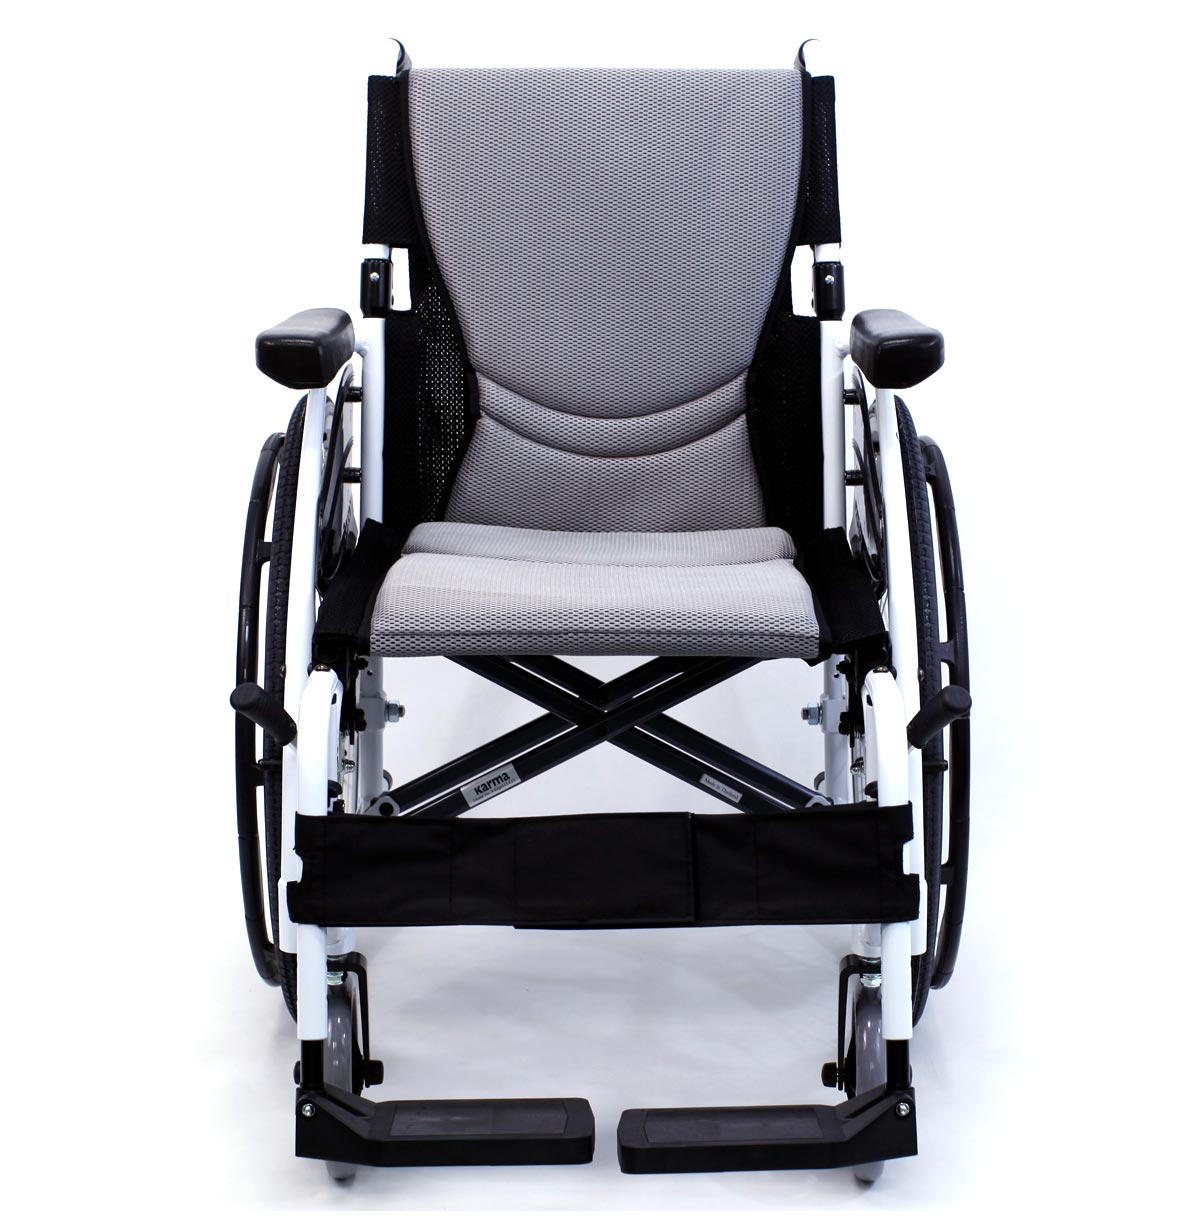 relax the back mobility lift chair game with speakers white wheelchair s ergo alpine 25 lbs ultralight